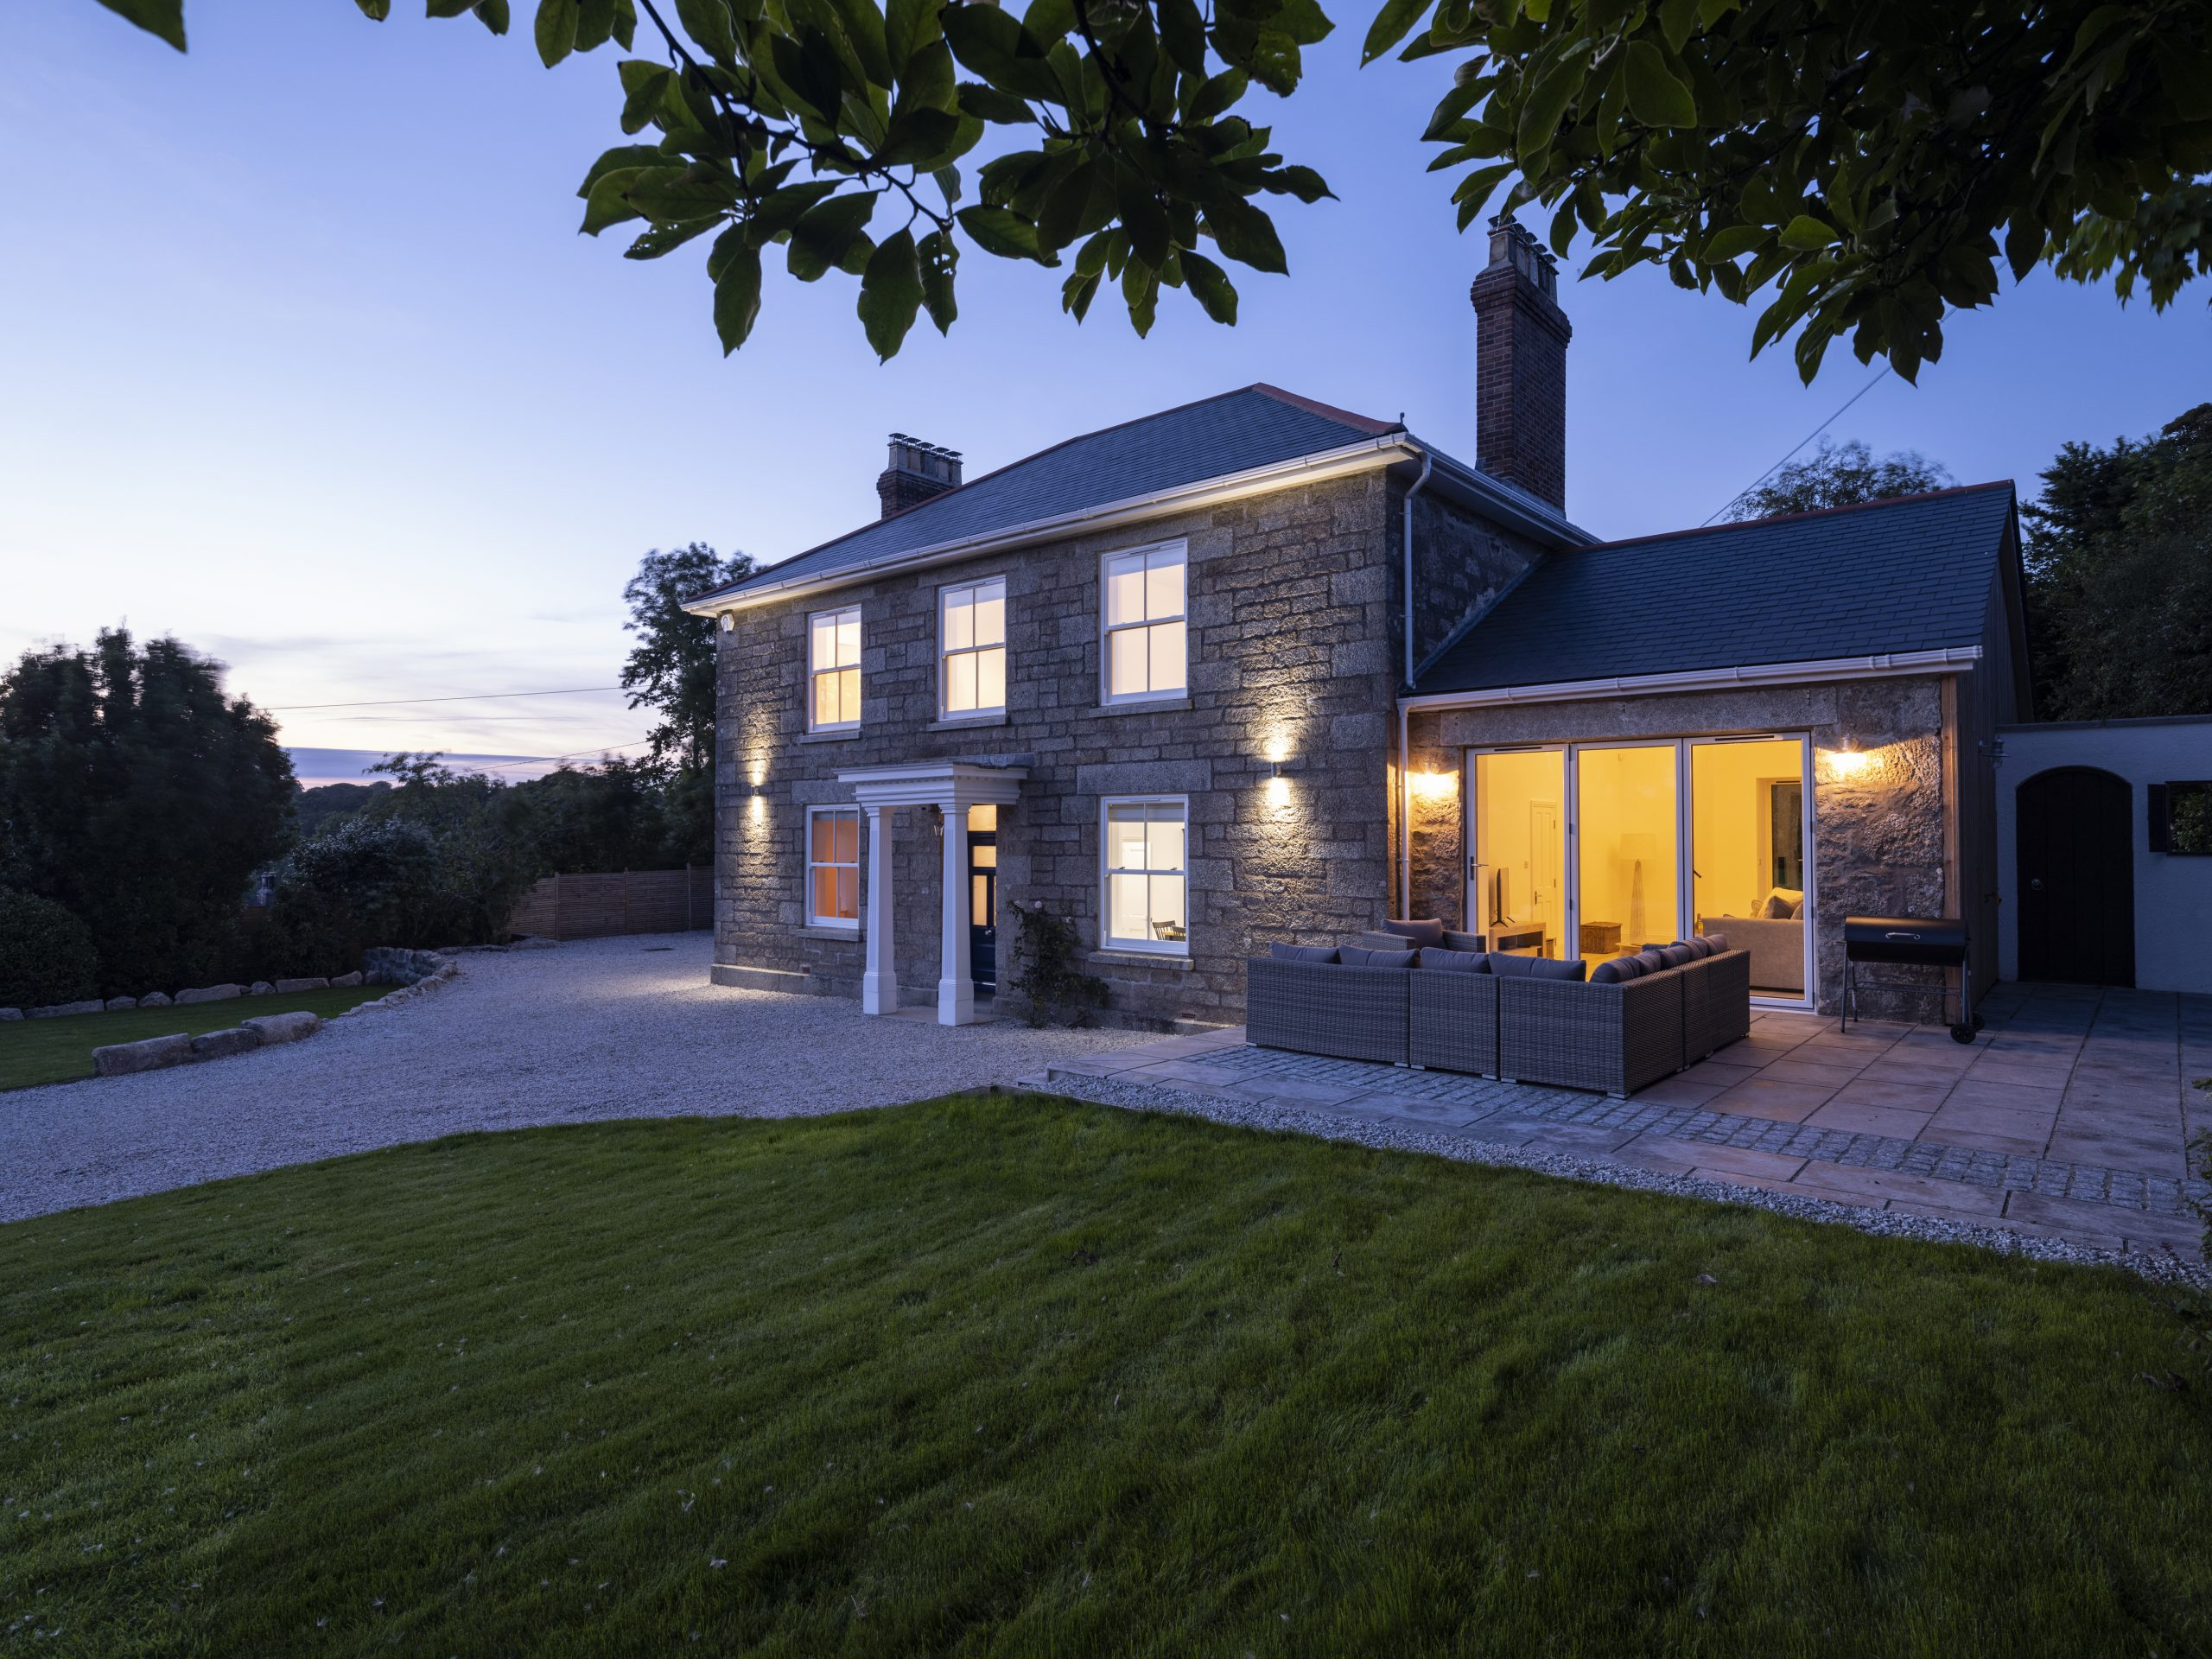 drym house, drym, hayle, cornwall, sandy toes stays, st ives, holiday let, property, rental, lounge, kitchen, dining, bedroom, bathroom